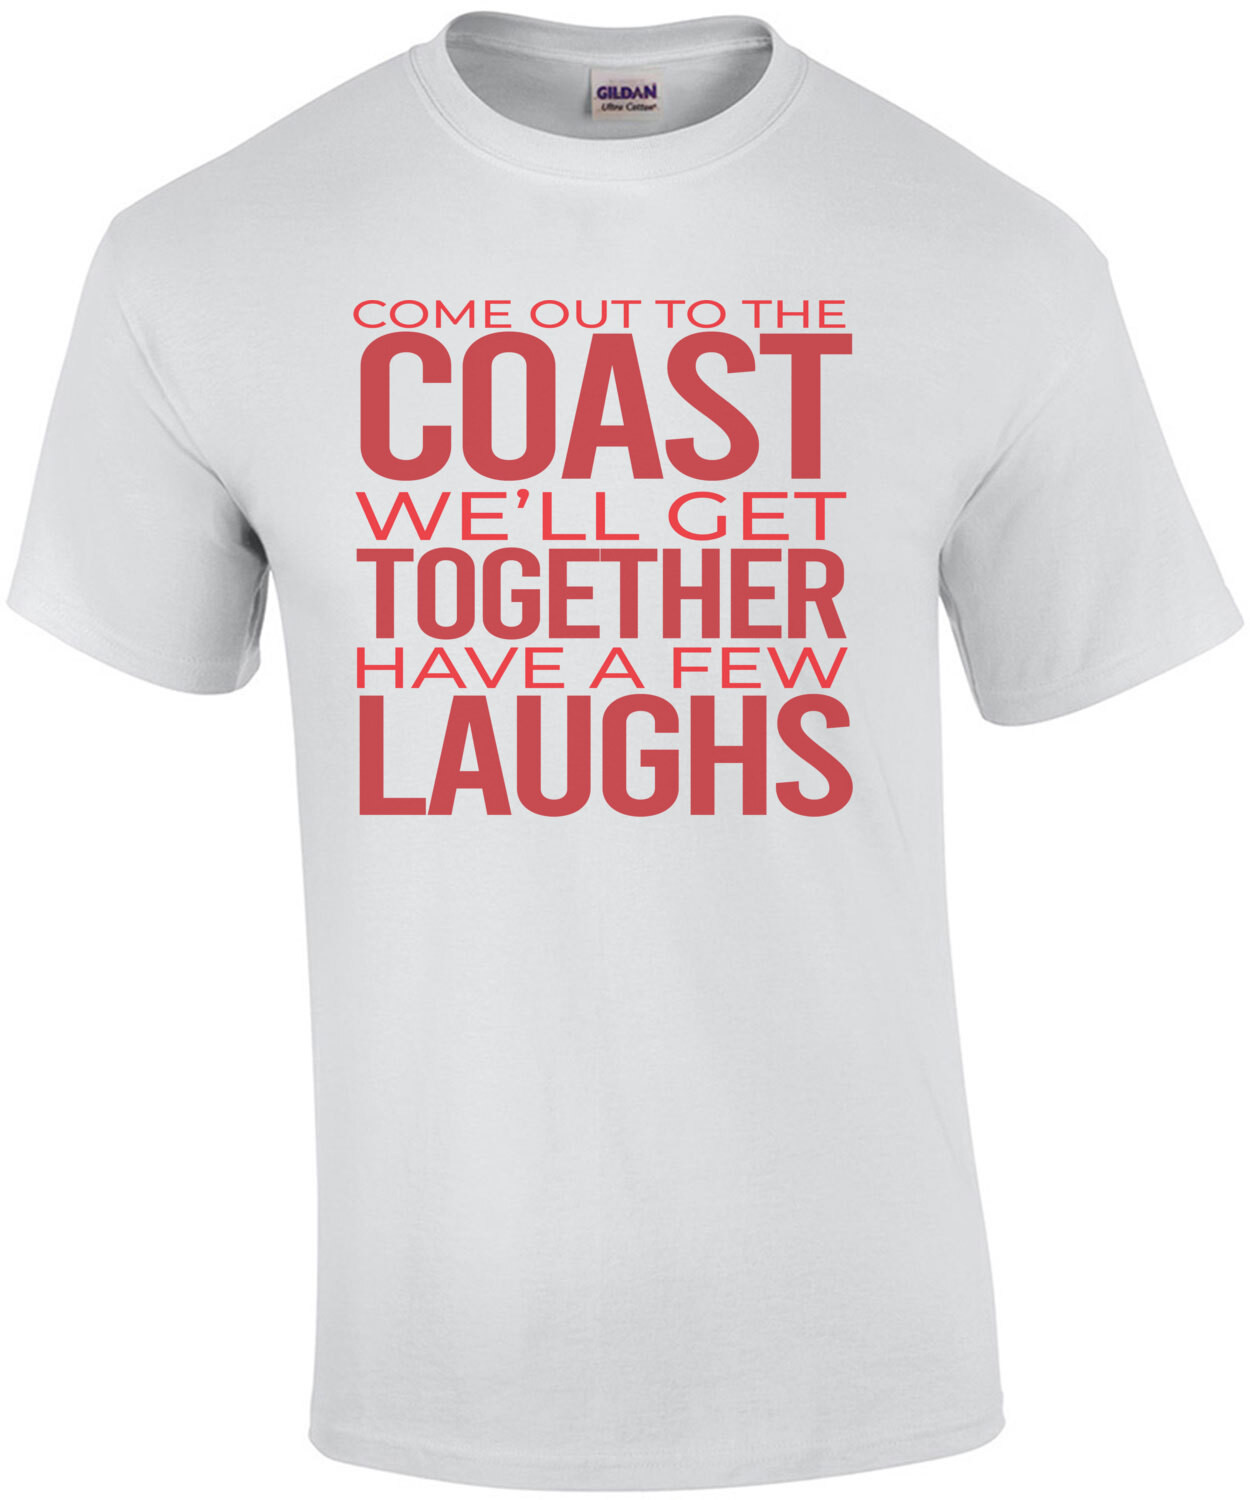 Come out to the coast we'll get together have a few laughs - die hard movie quote 80's t-shirt